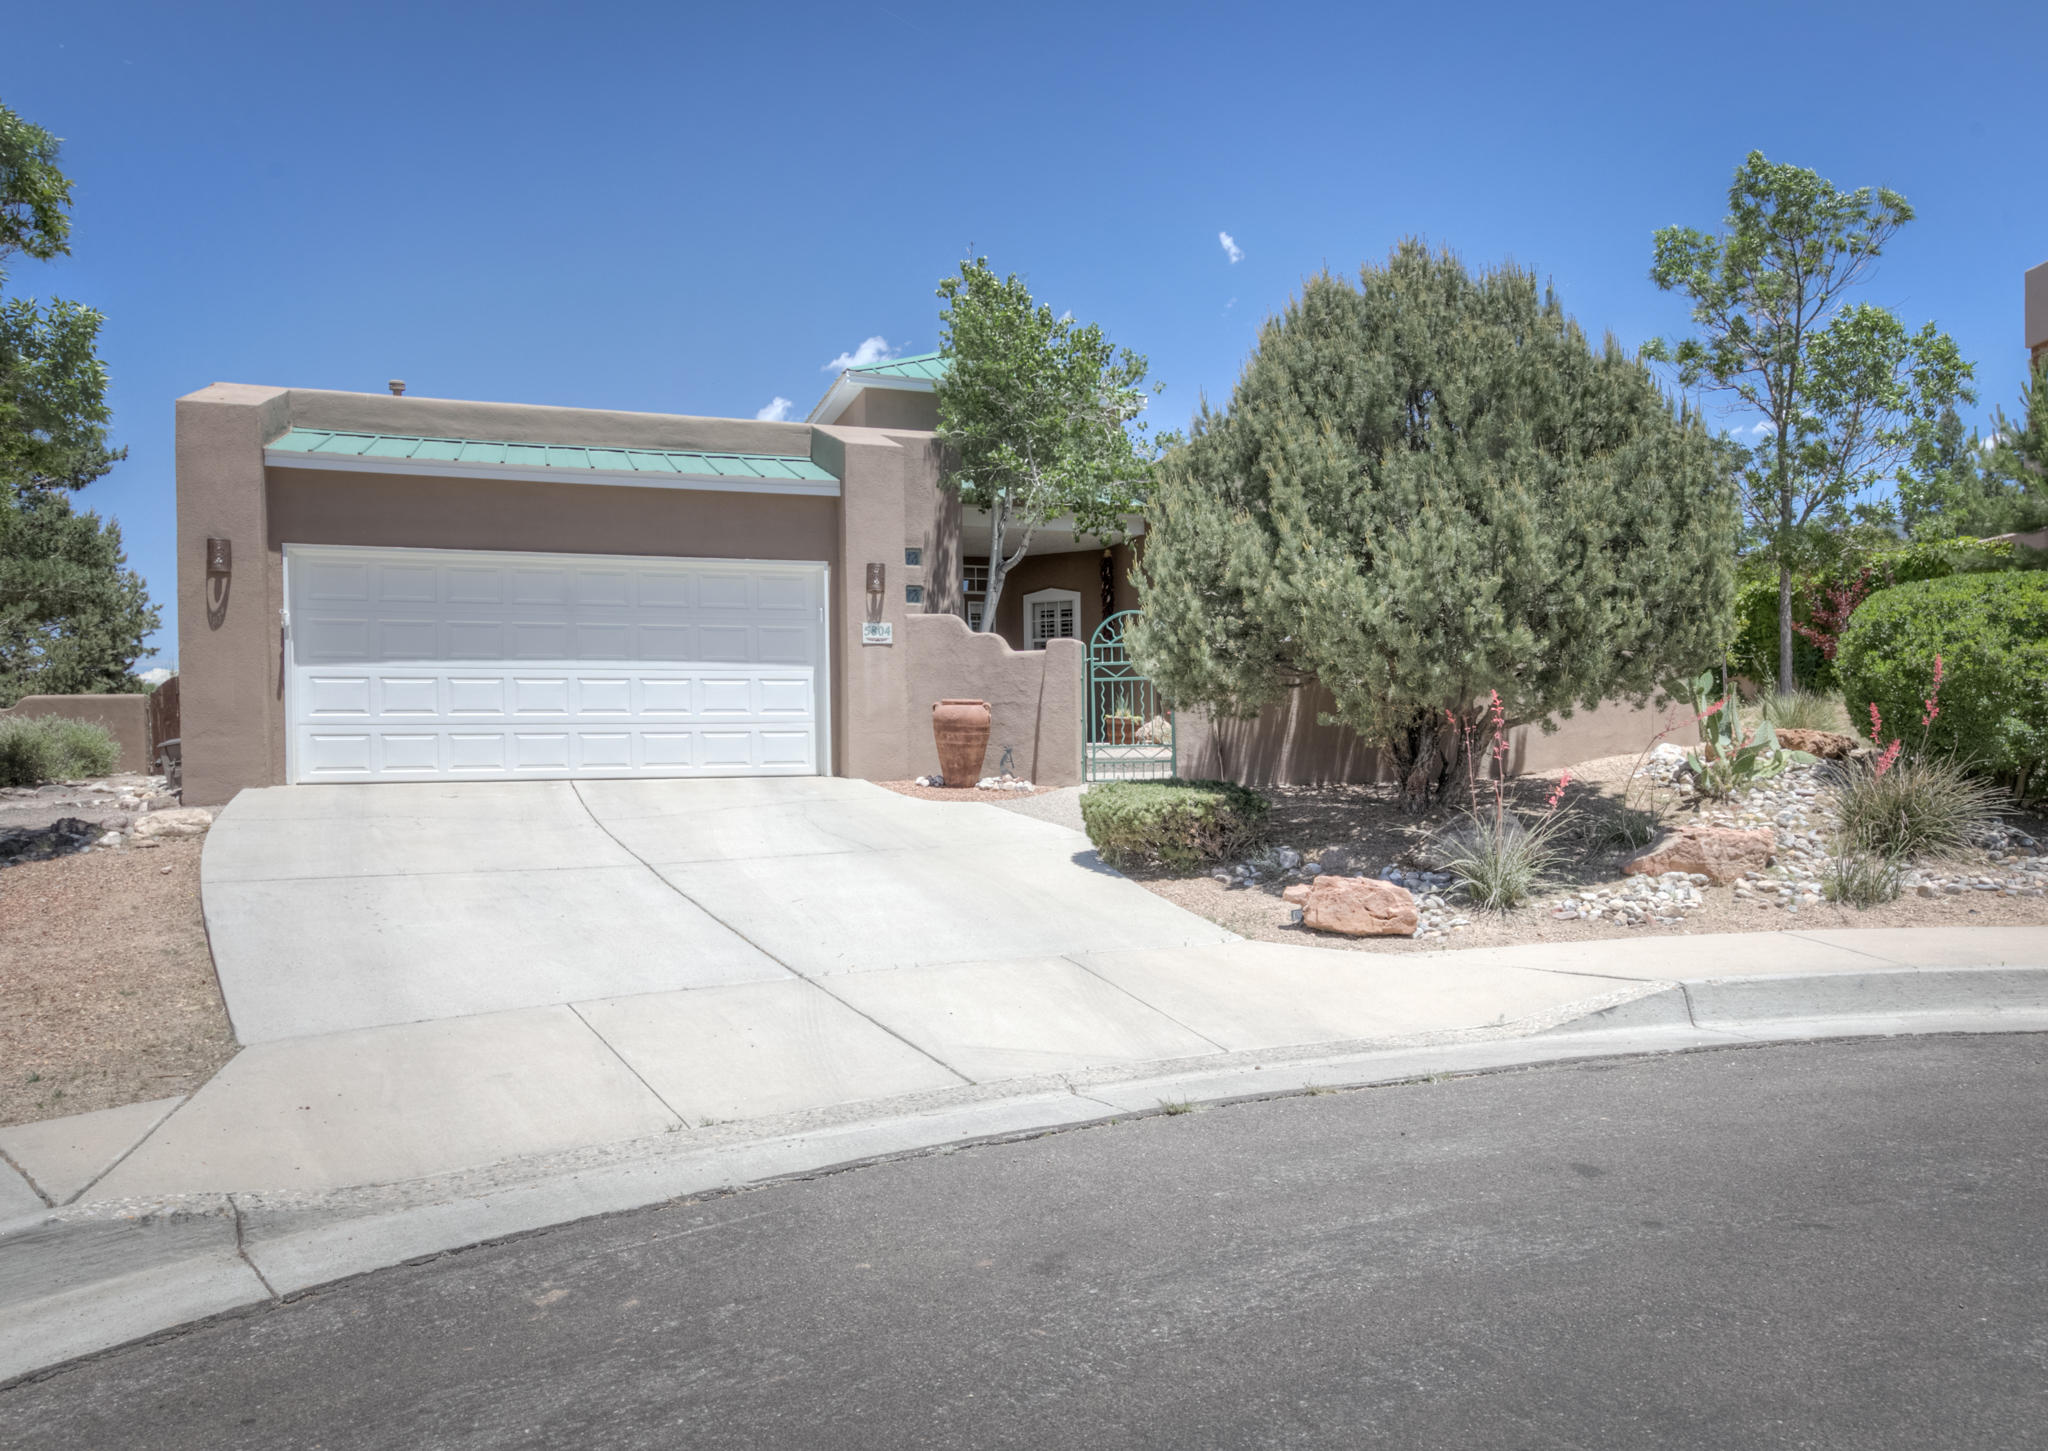 5804 SOLTERRA Place NE, Albuquerque, NM 87111 - Albuquerque, NM real estate listing